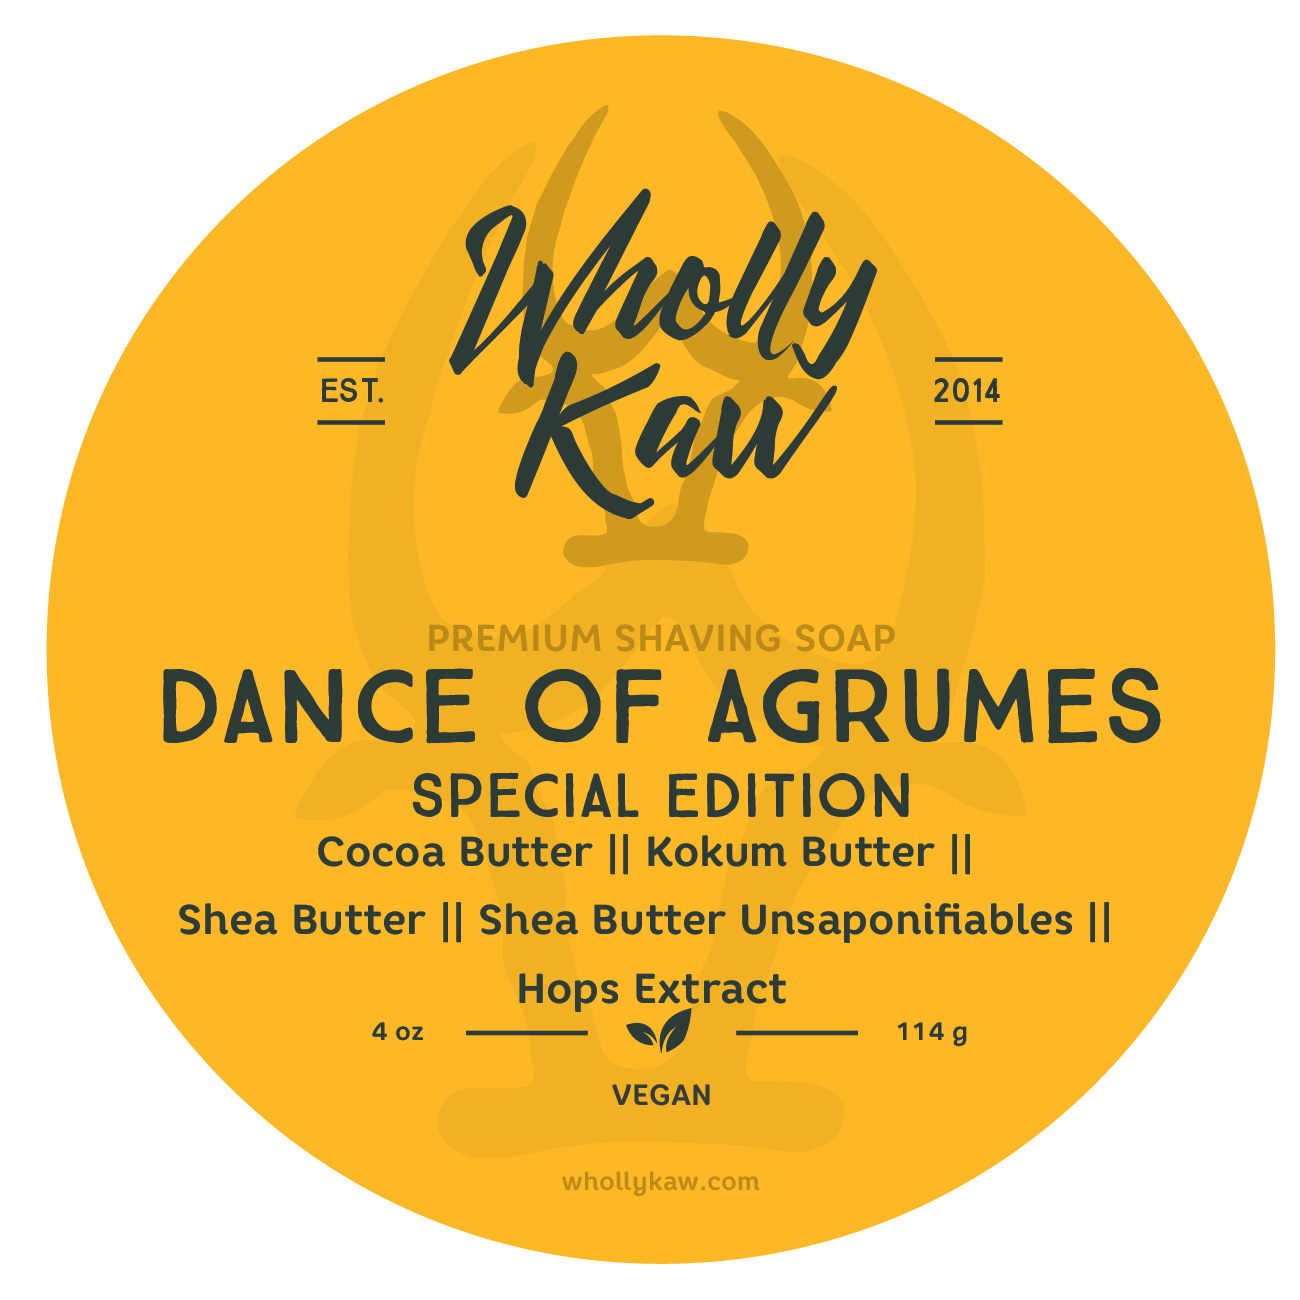 Wholly Kaw - Dance of Agrumes - Soap (Vegan) image